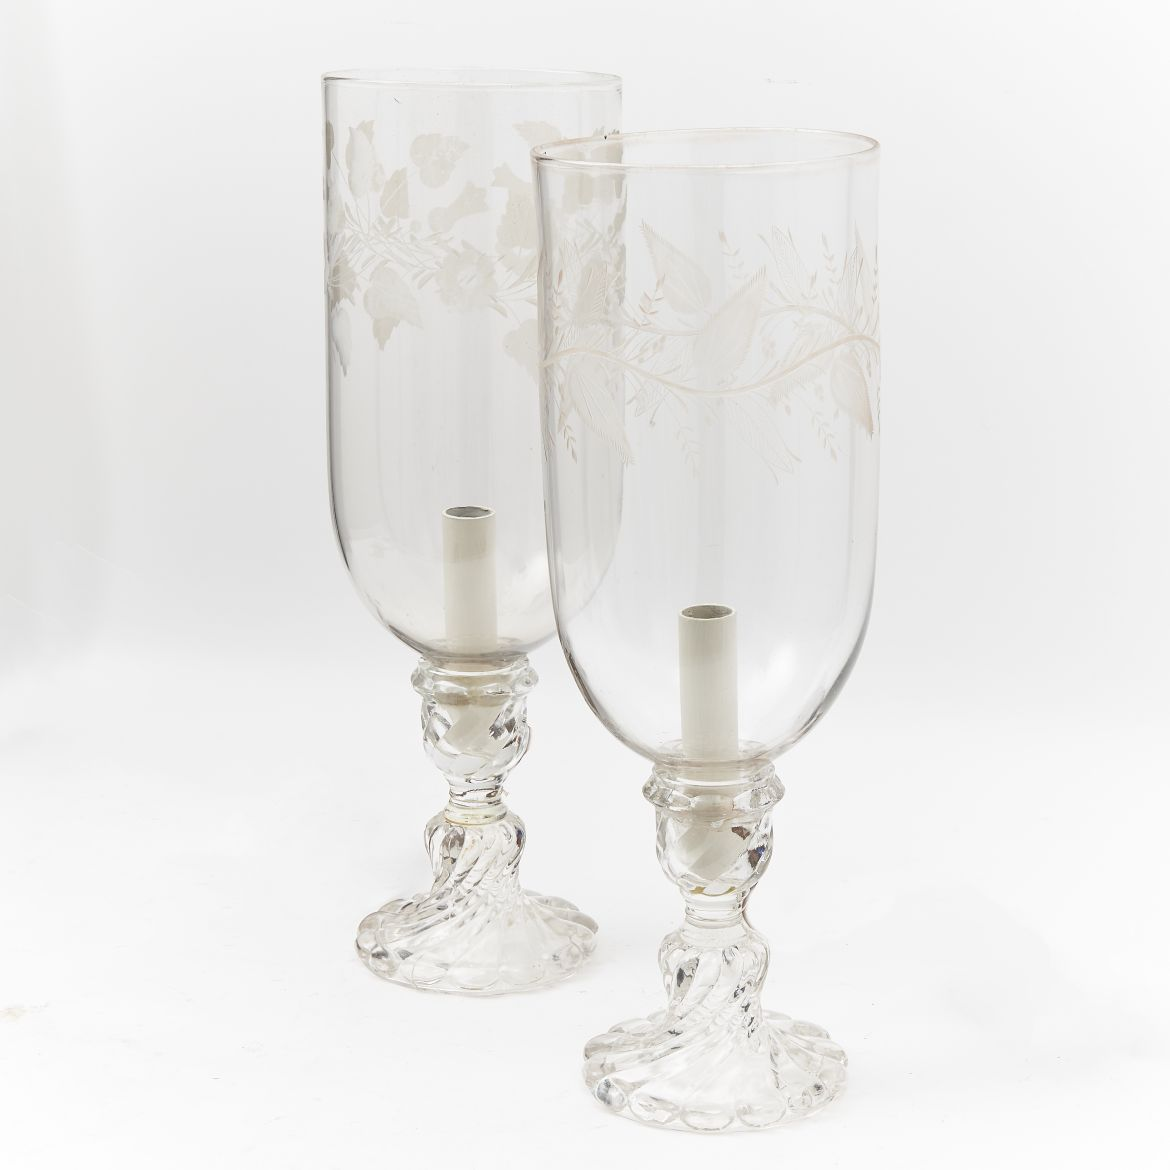 Matched Pair of Etched C19th Hurricane Shades